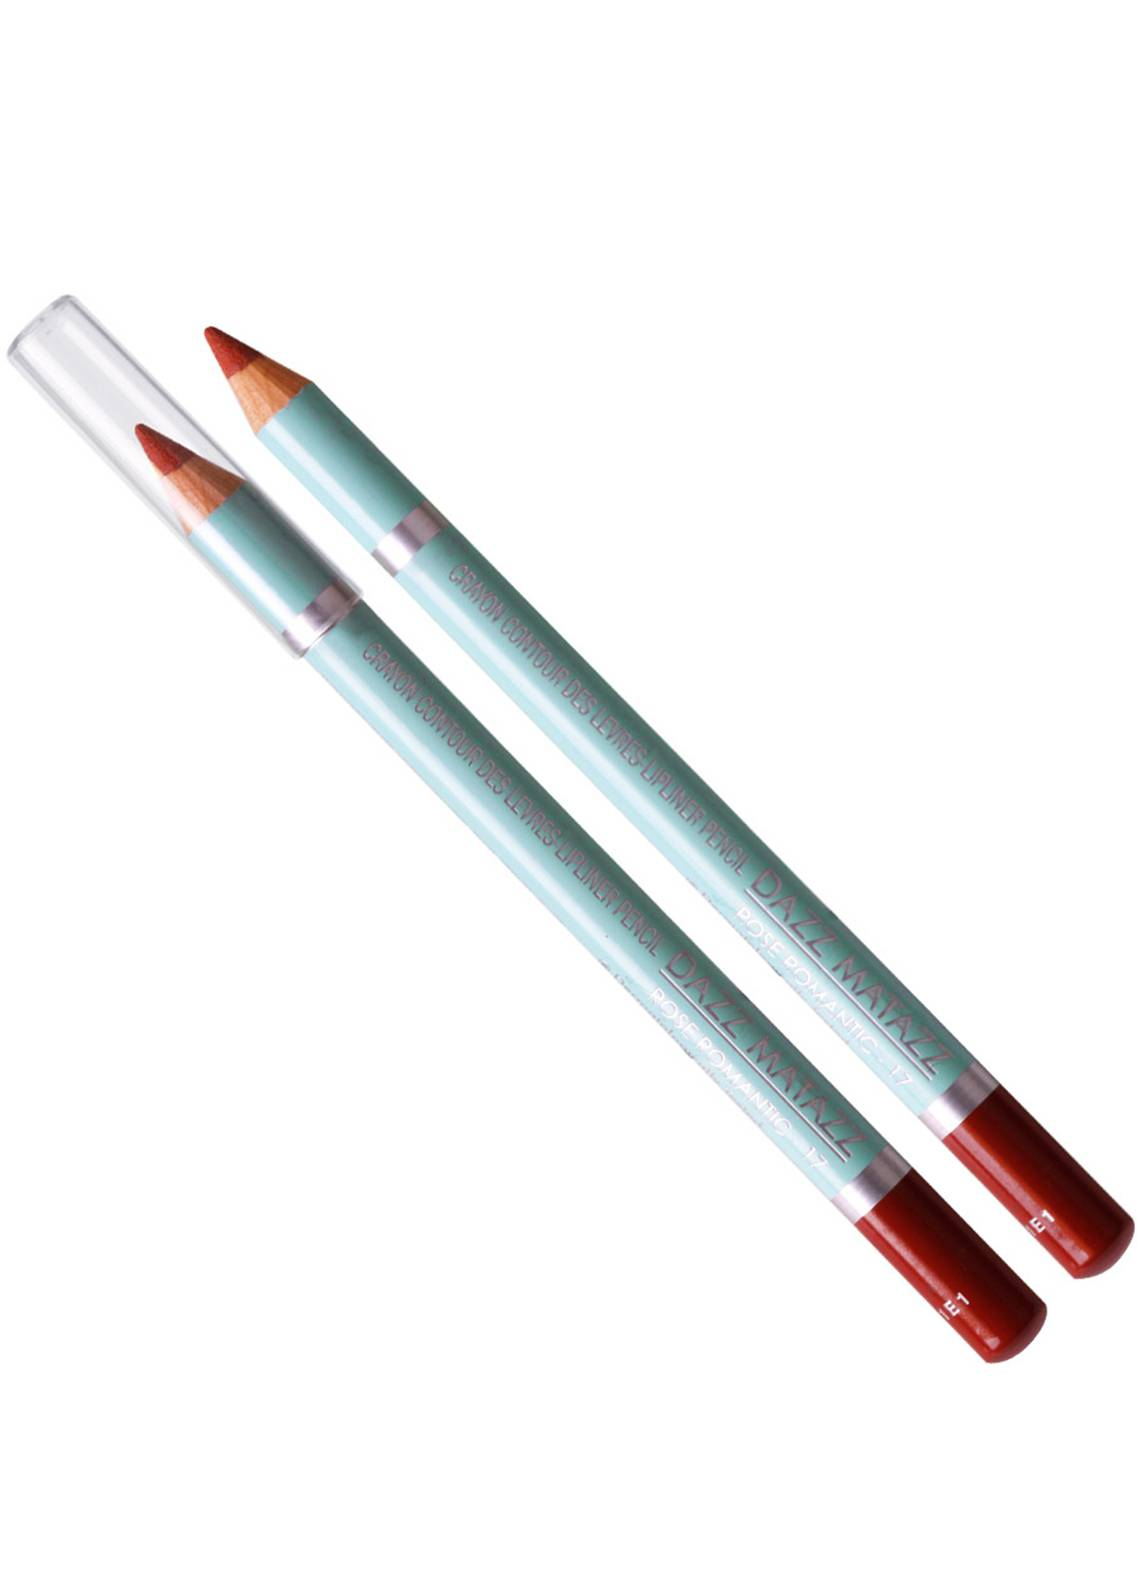 Dazz Matazz Lip Liner Pencil-17 ROSE ROMANTIC